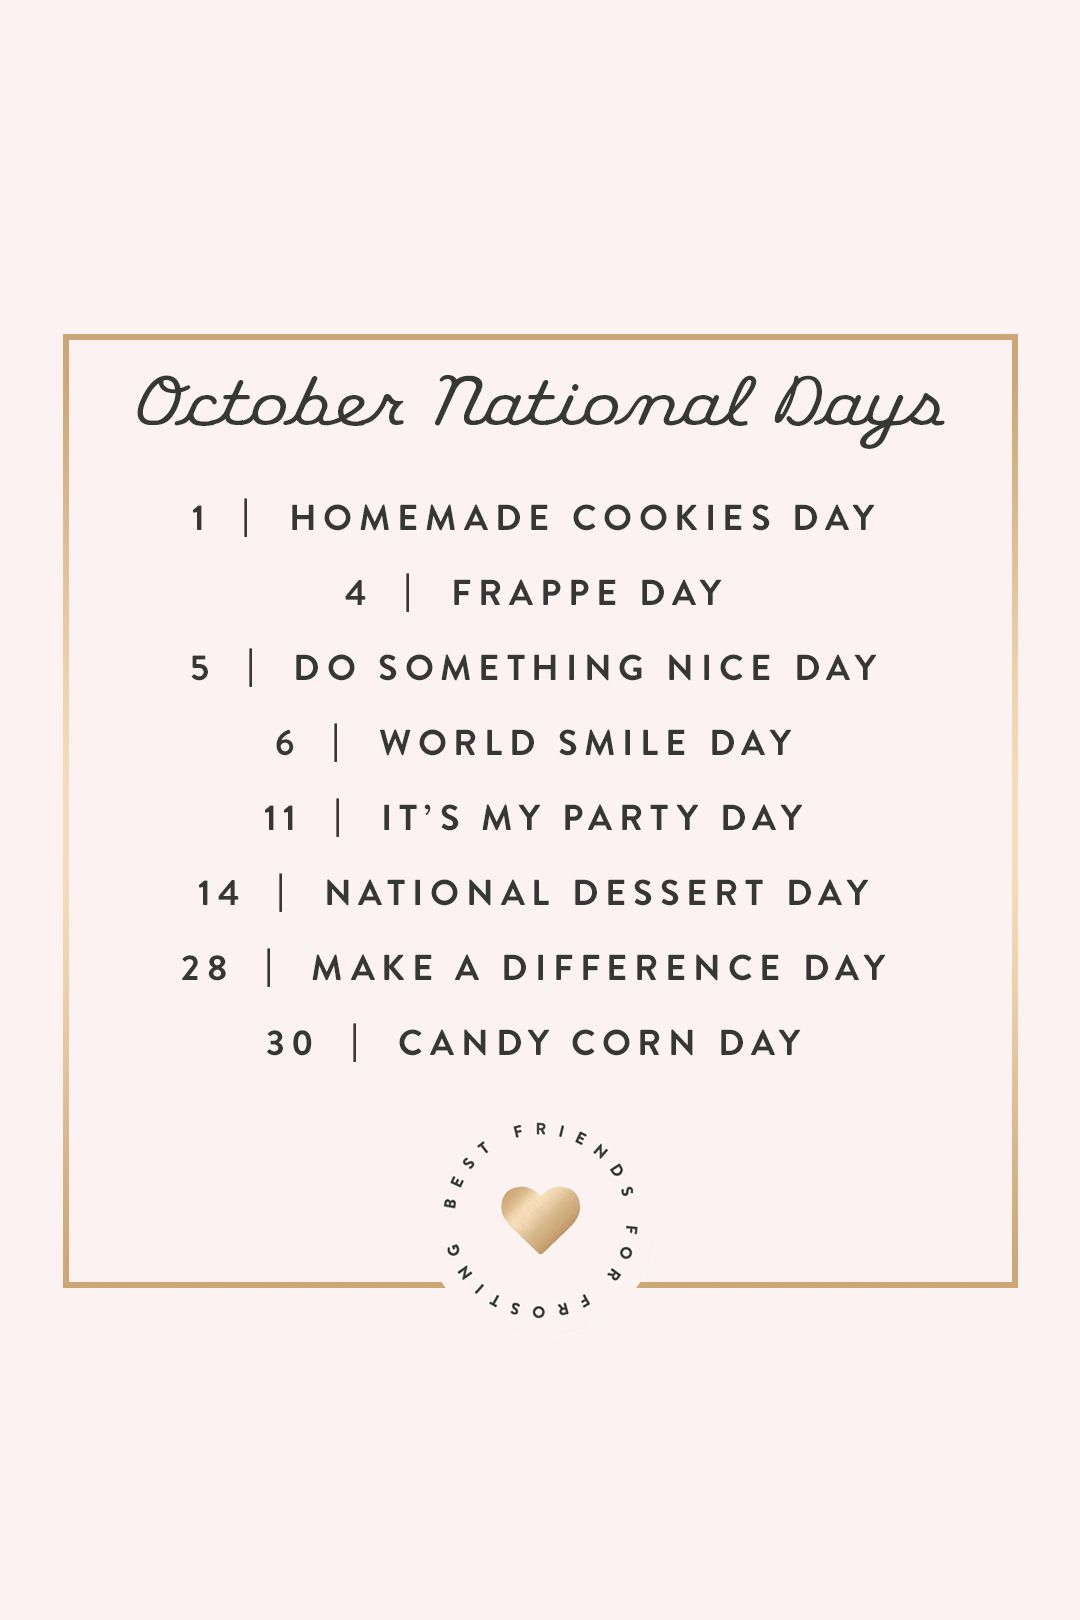 October National Days Best Friends For Frosting Inspirational Quotes Motivation Fun Quotes Funny Motivational Quotes